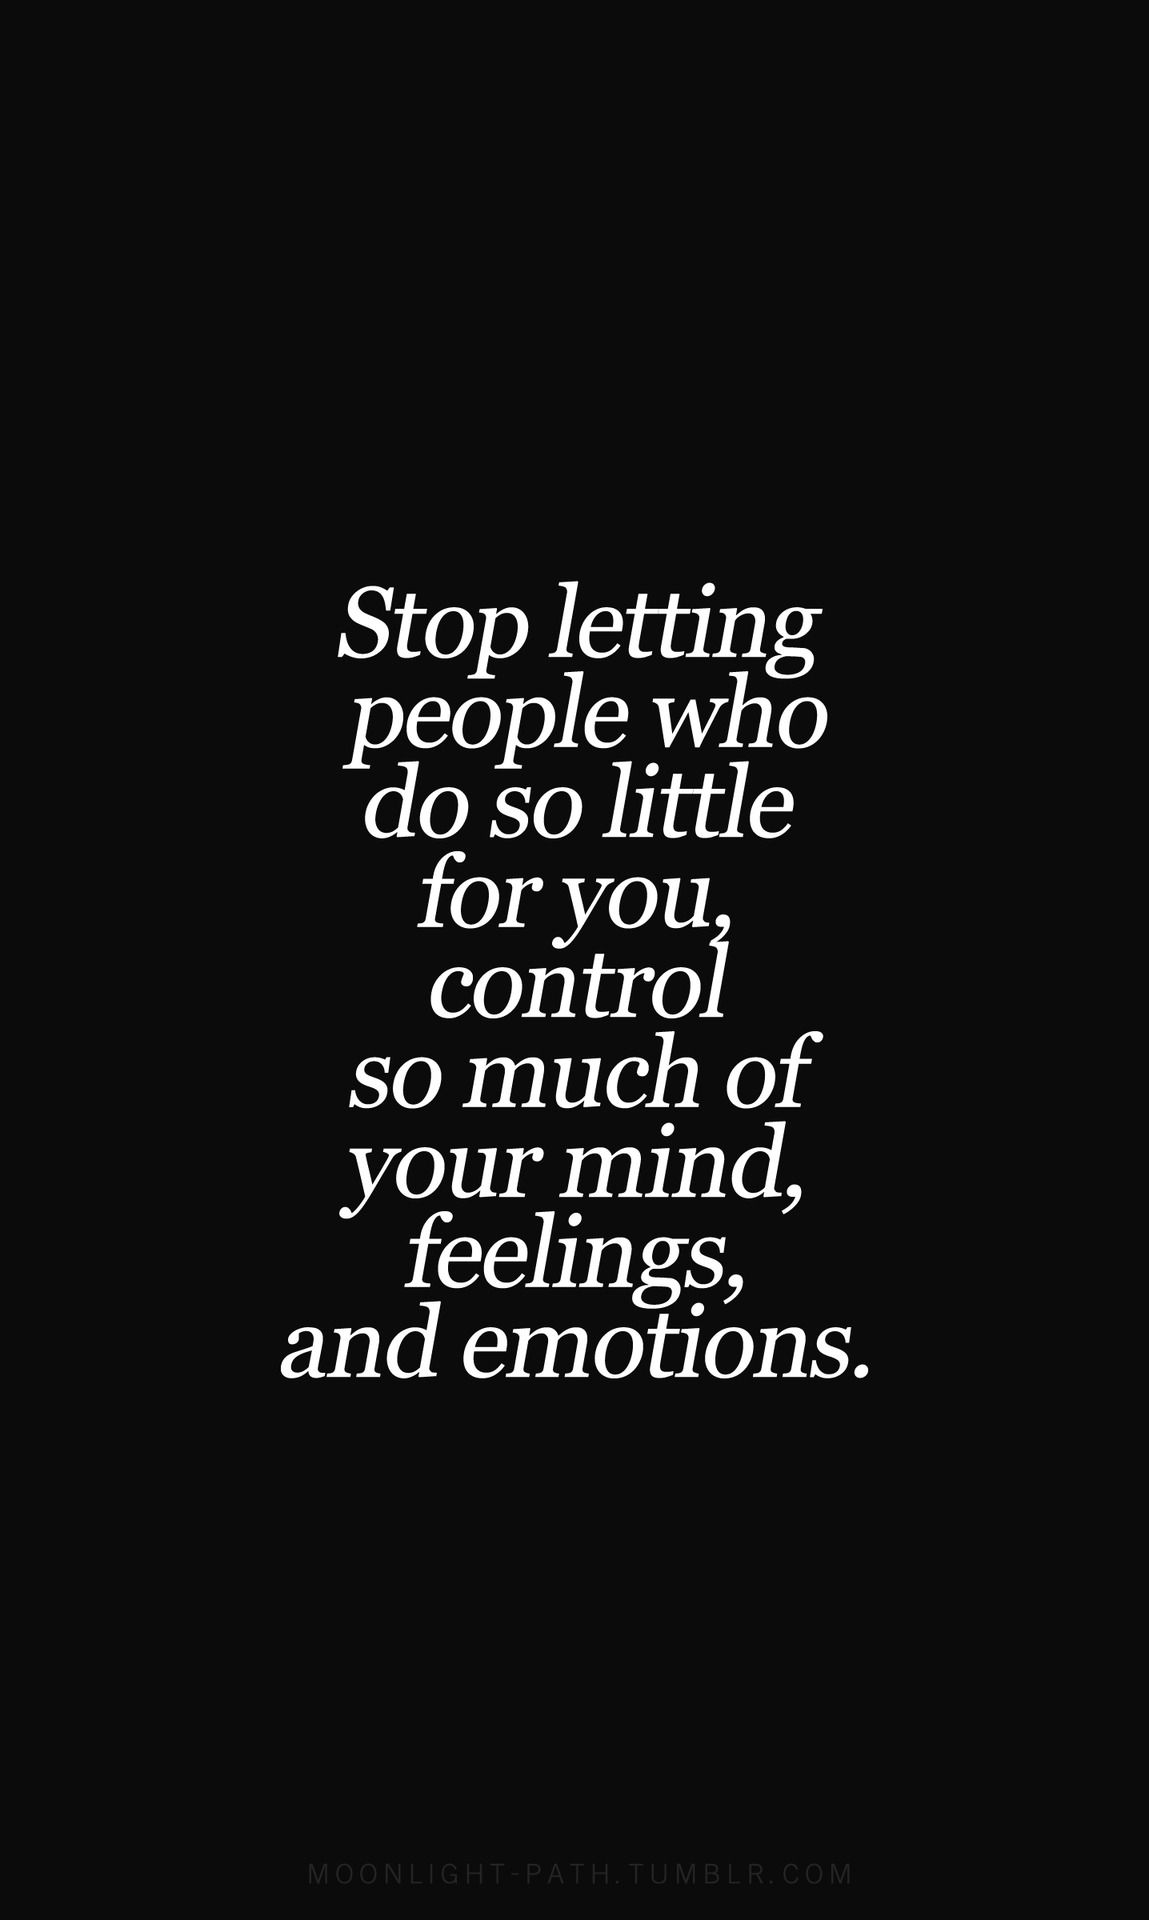 Stop letting people who do so little for you control so much of your mind feelings and emotions °•â—‹â—‹ Quotes °•â—‹â—‹ Pinterest